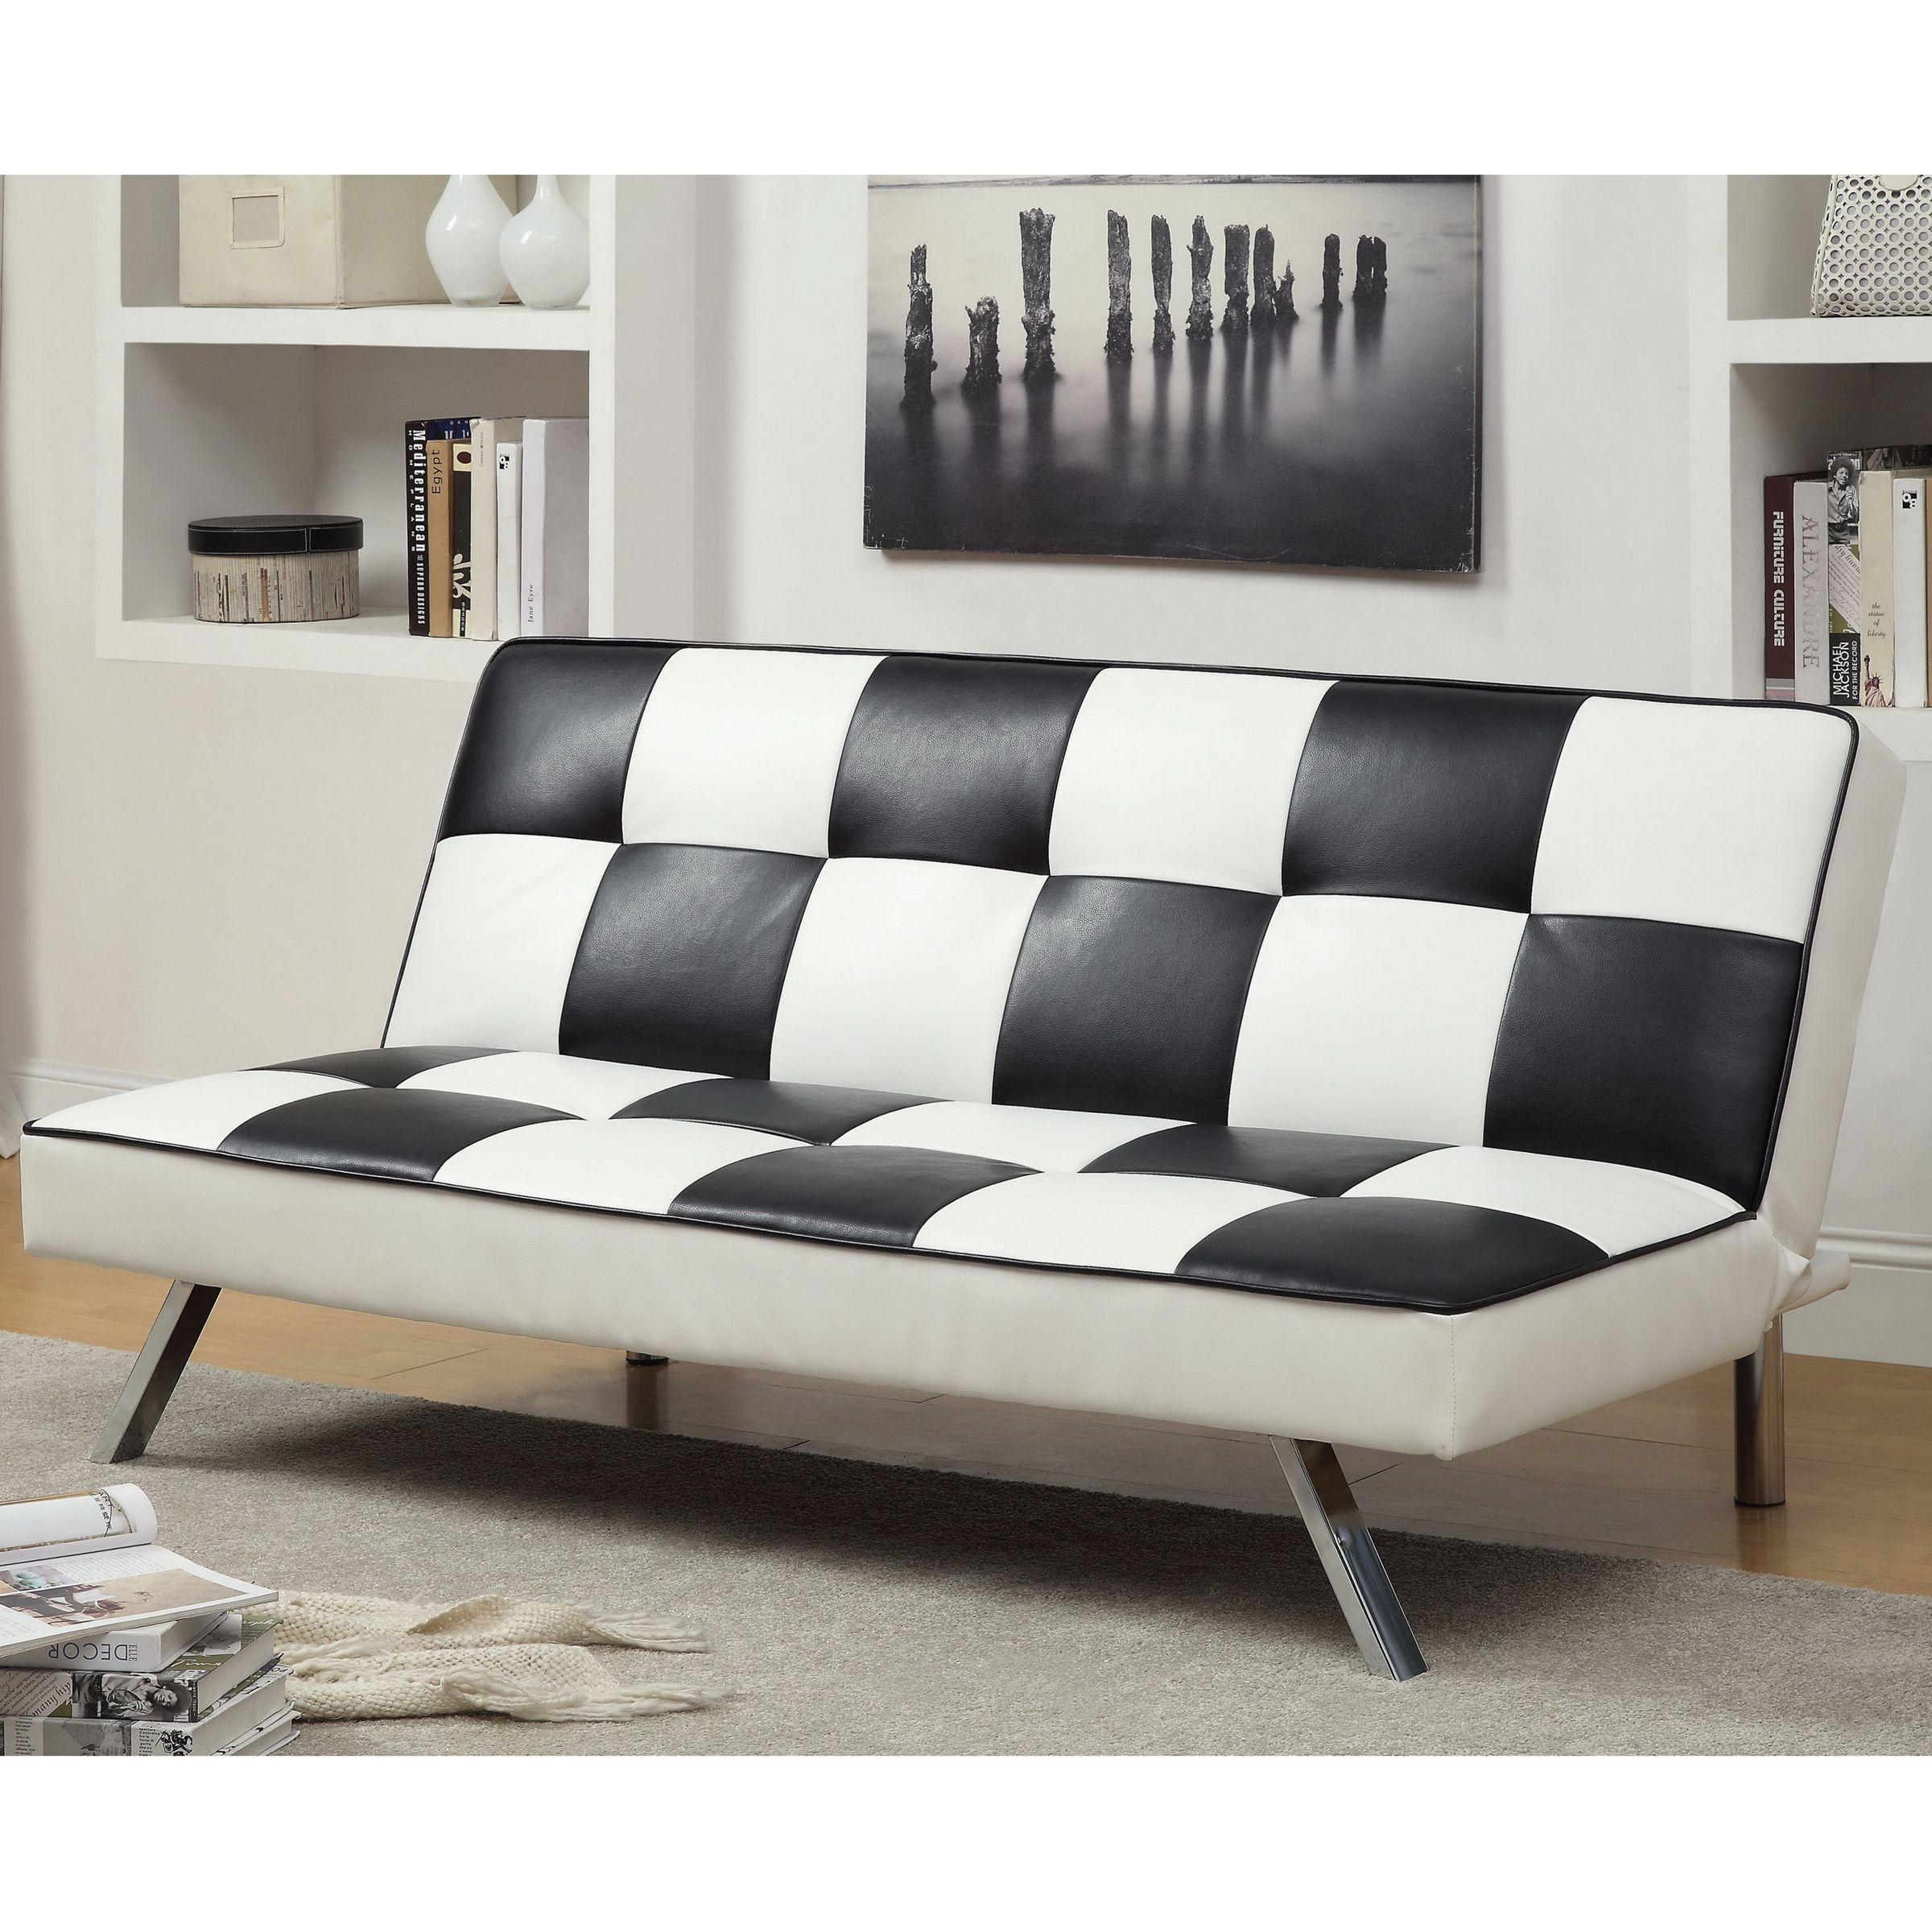 The Apis Modern Retro Futon Is A Chic Accent That Fits Right In With